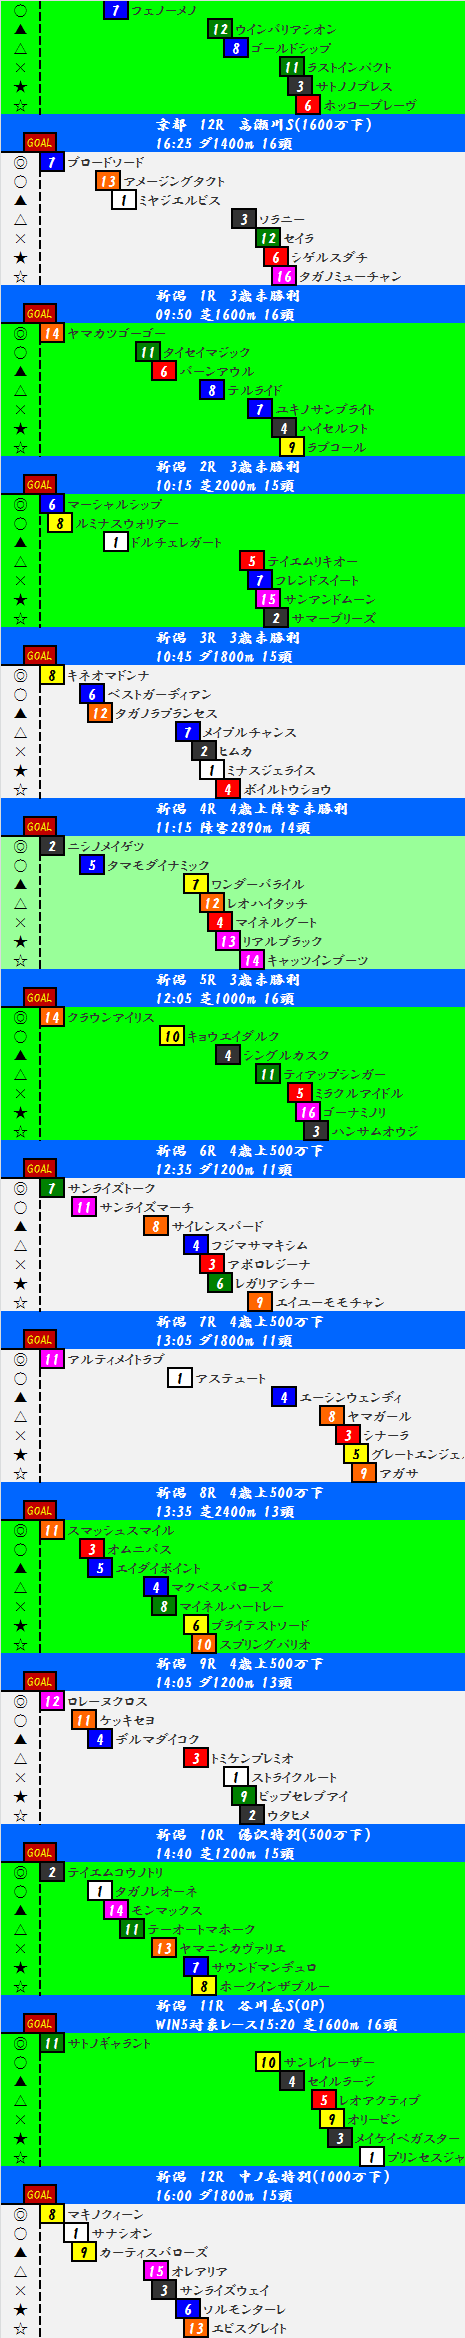 201405042.png